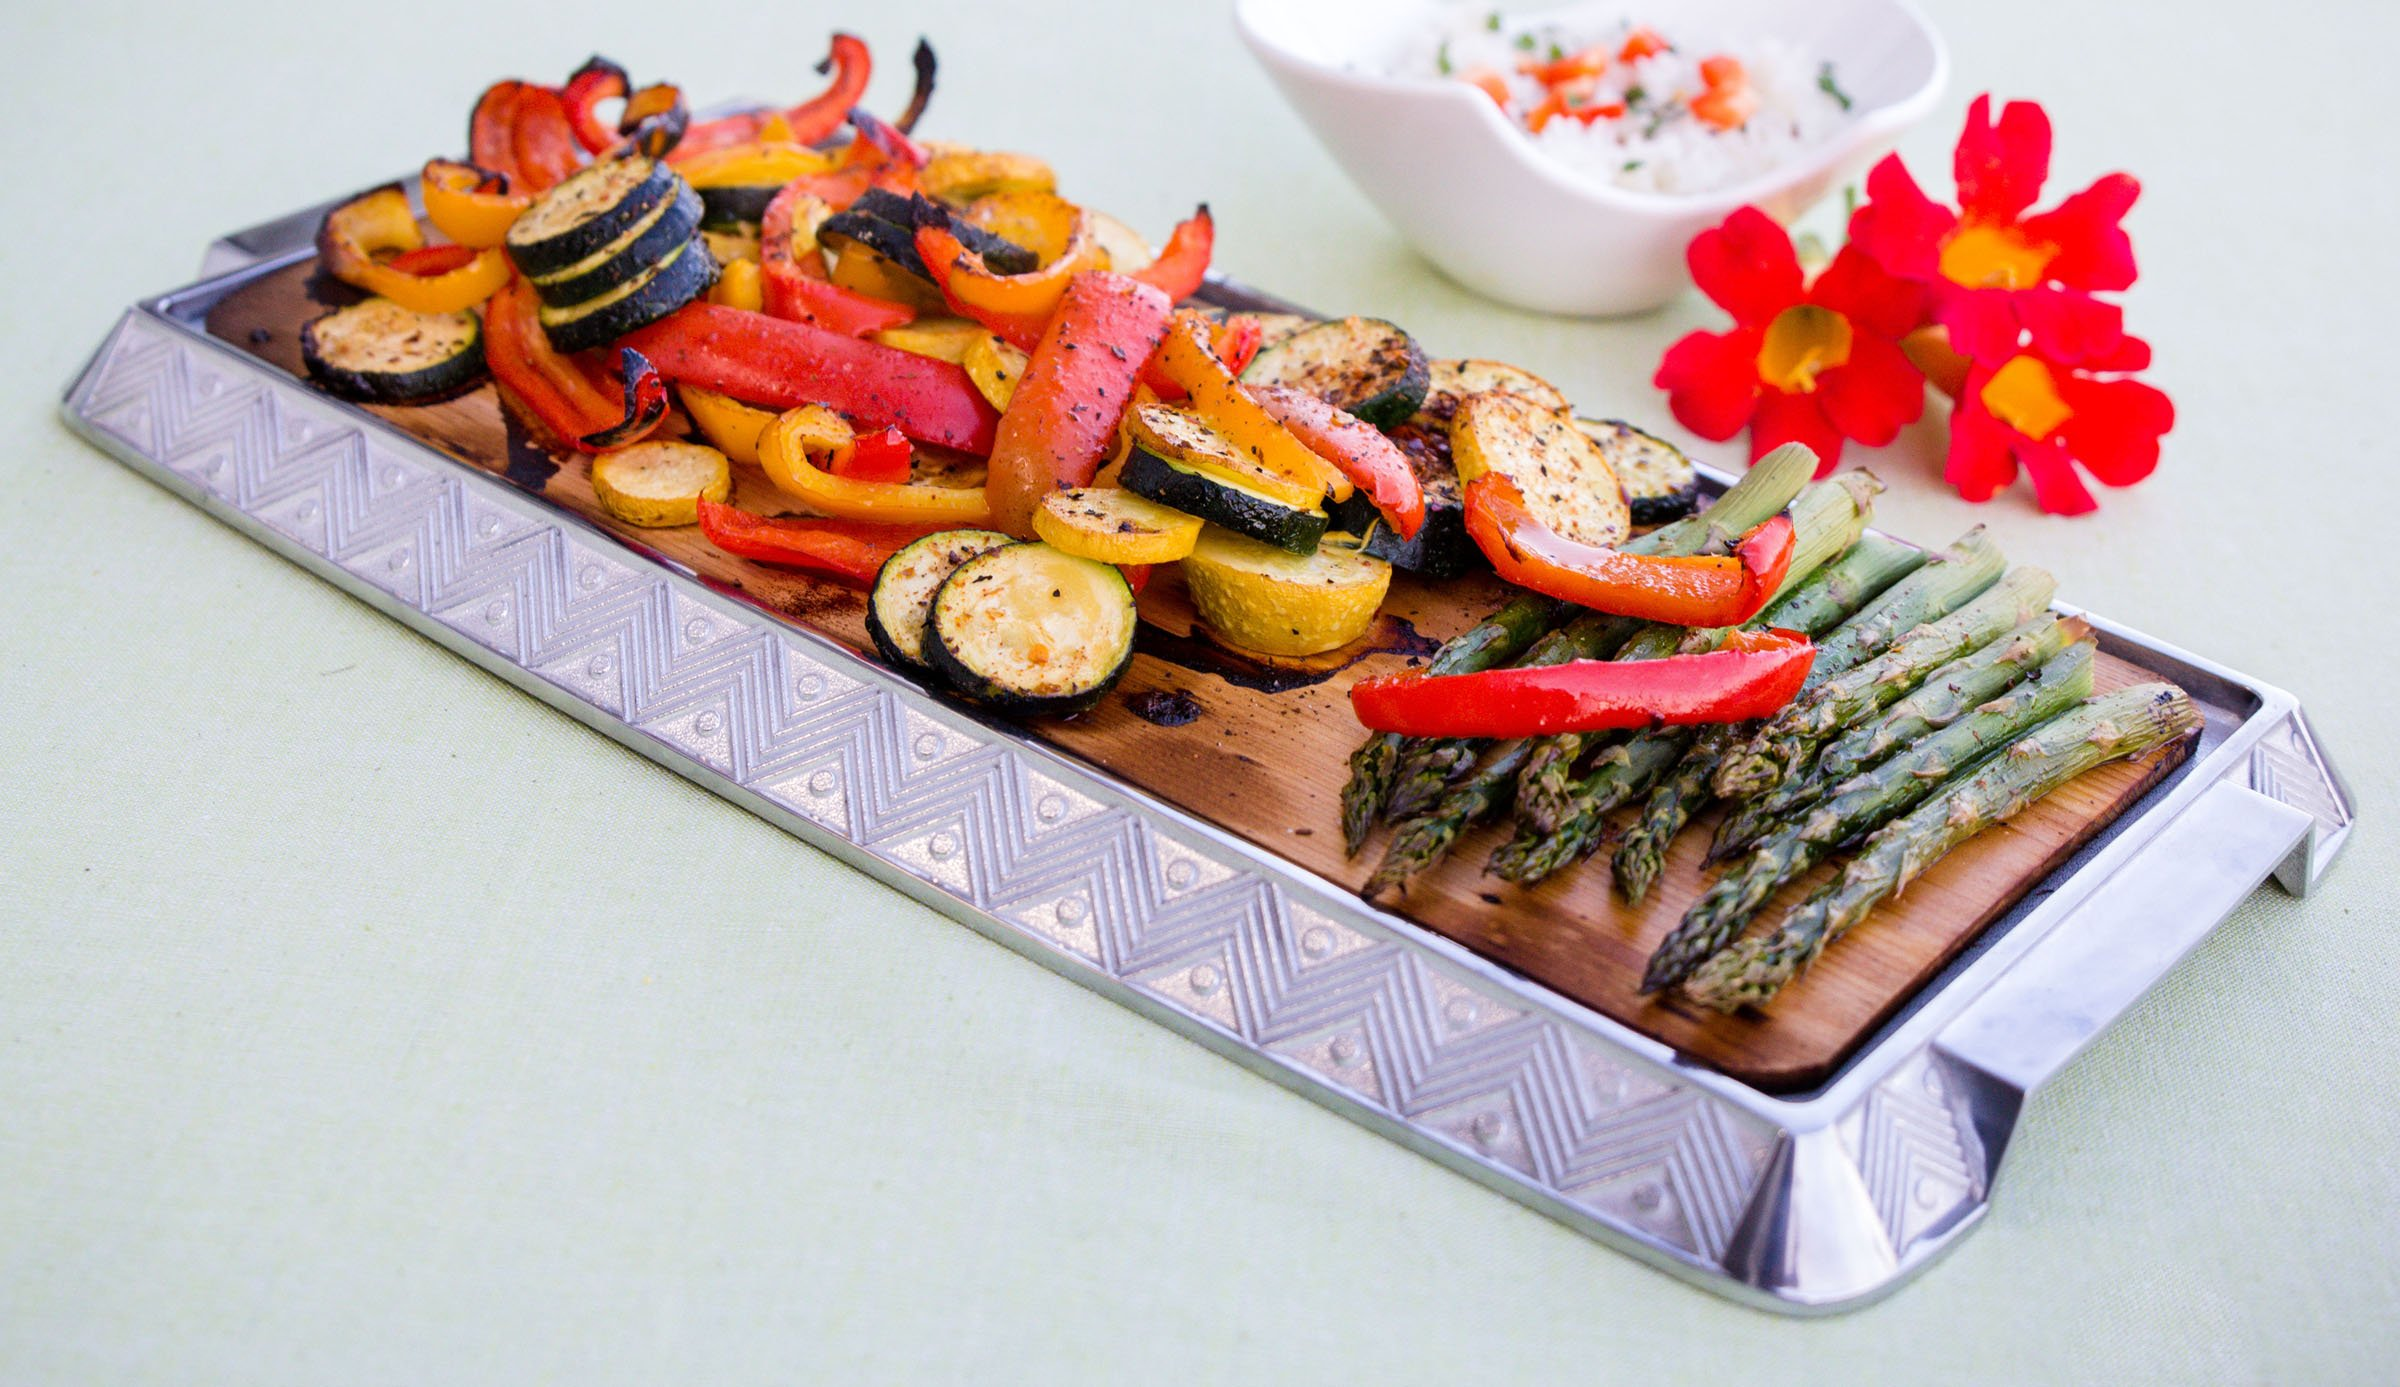 Coastal Cuisine 14 Pack 7x16'' Cedar Grilling Planks + Aluminum Serving Platter – Perfect for any grilling enthusiast.  Enjoy delicious restaurant quality meals and a stunning presentation. by Coastal Cuisine (Image #5)